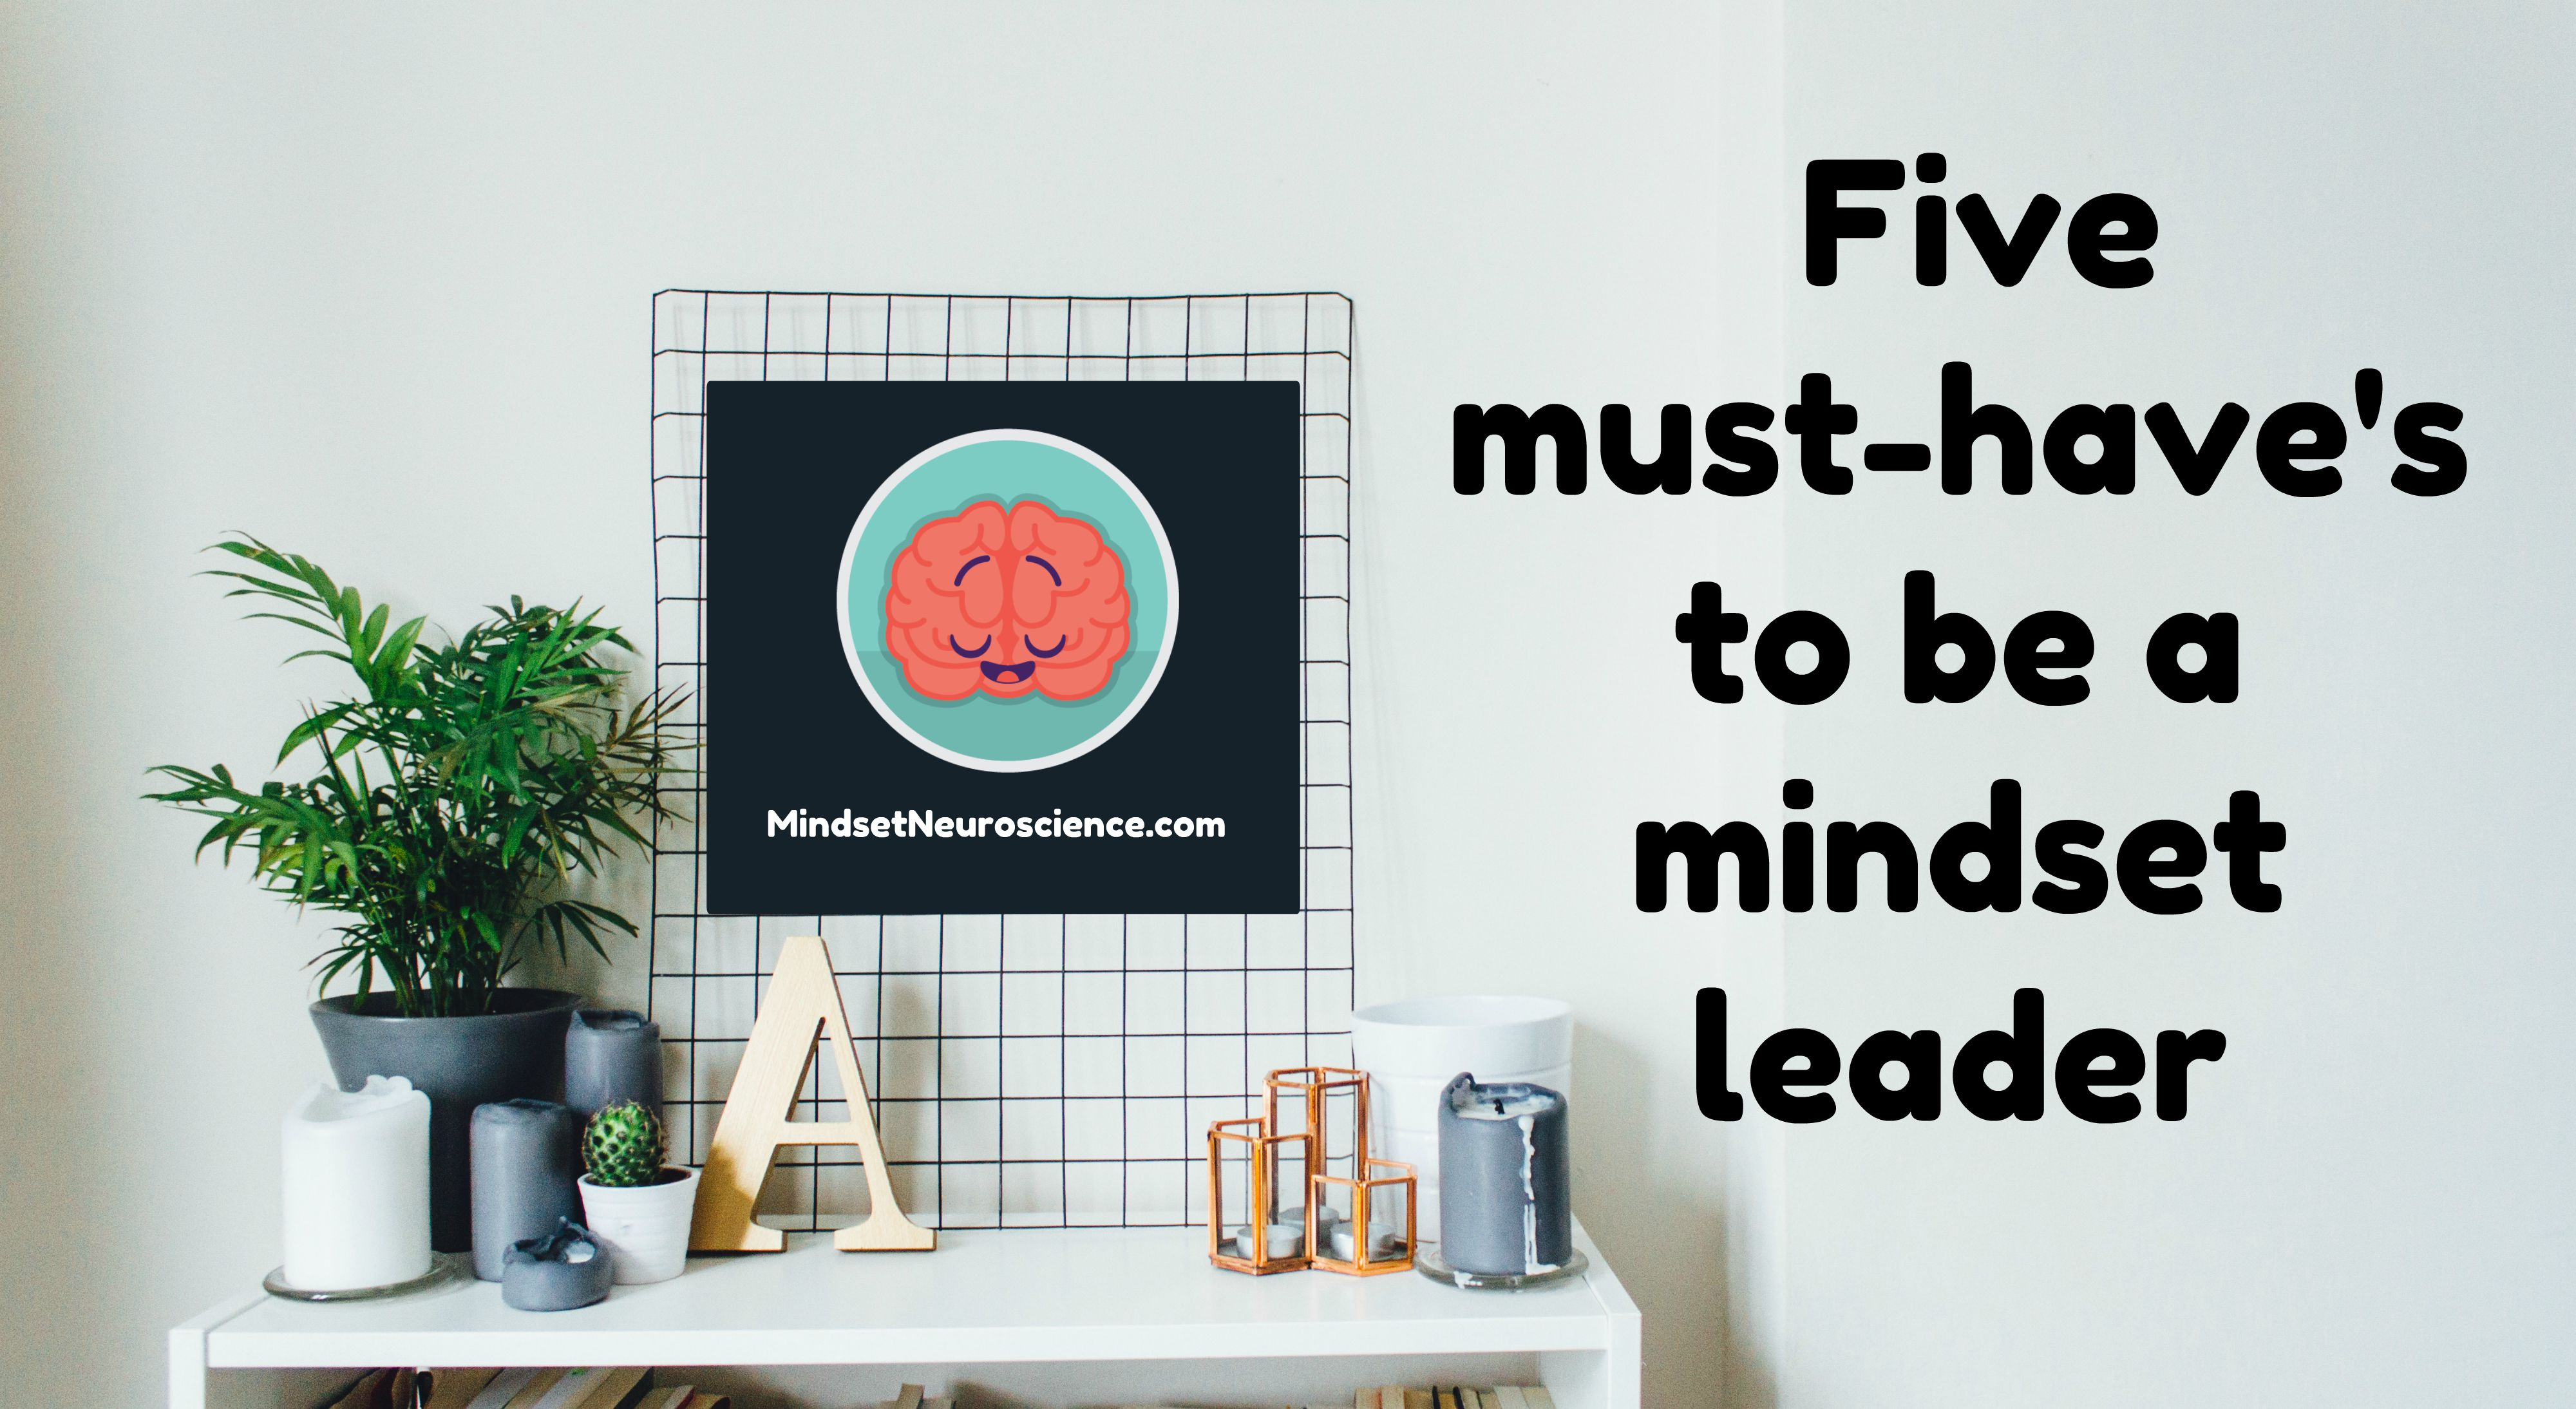 five must-haves to be a mindset leader